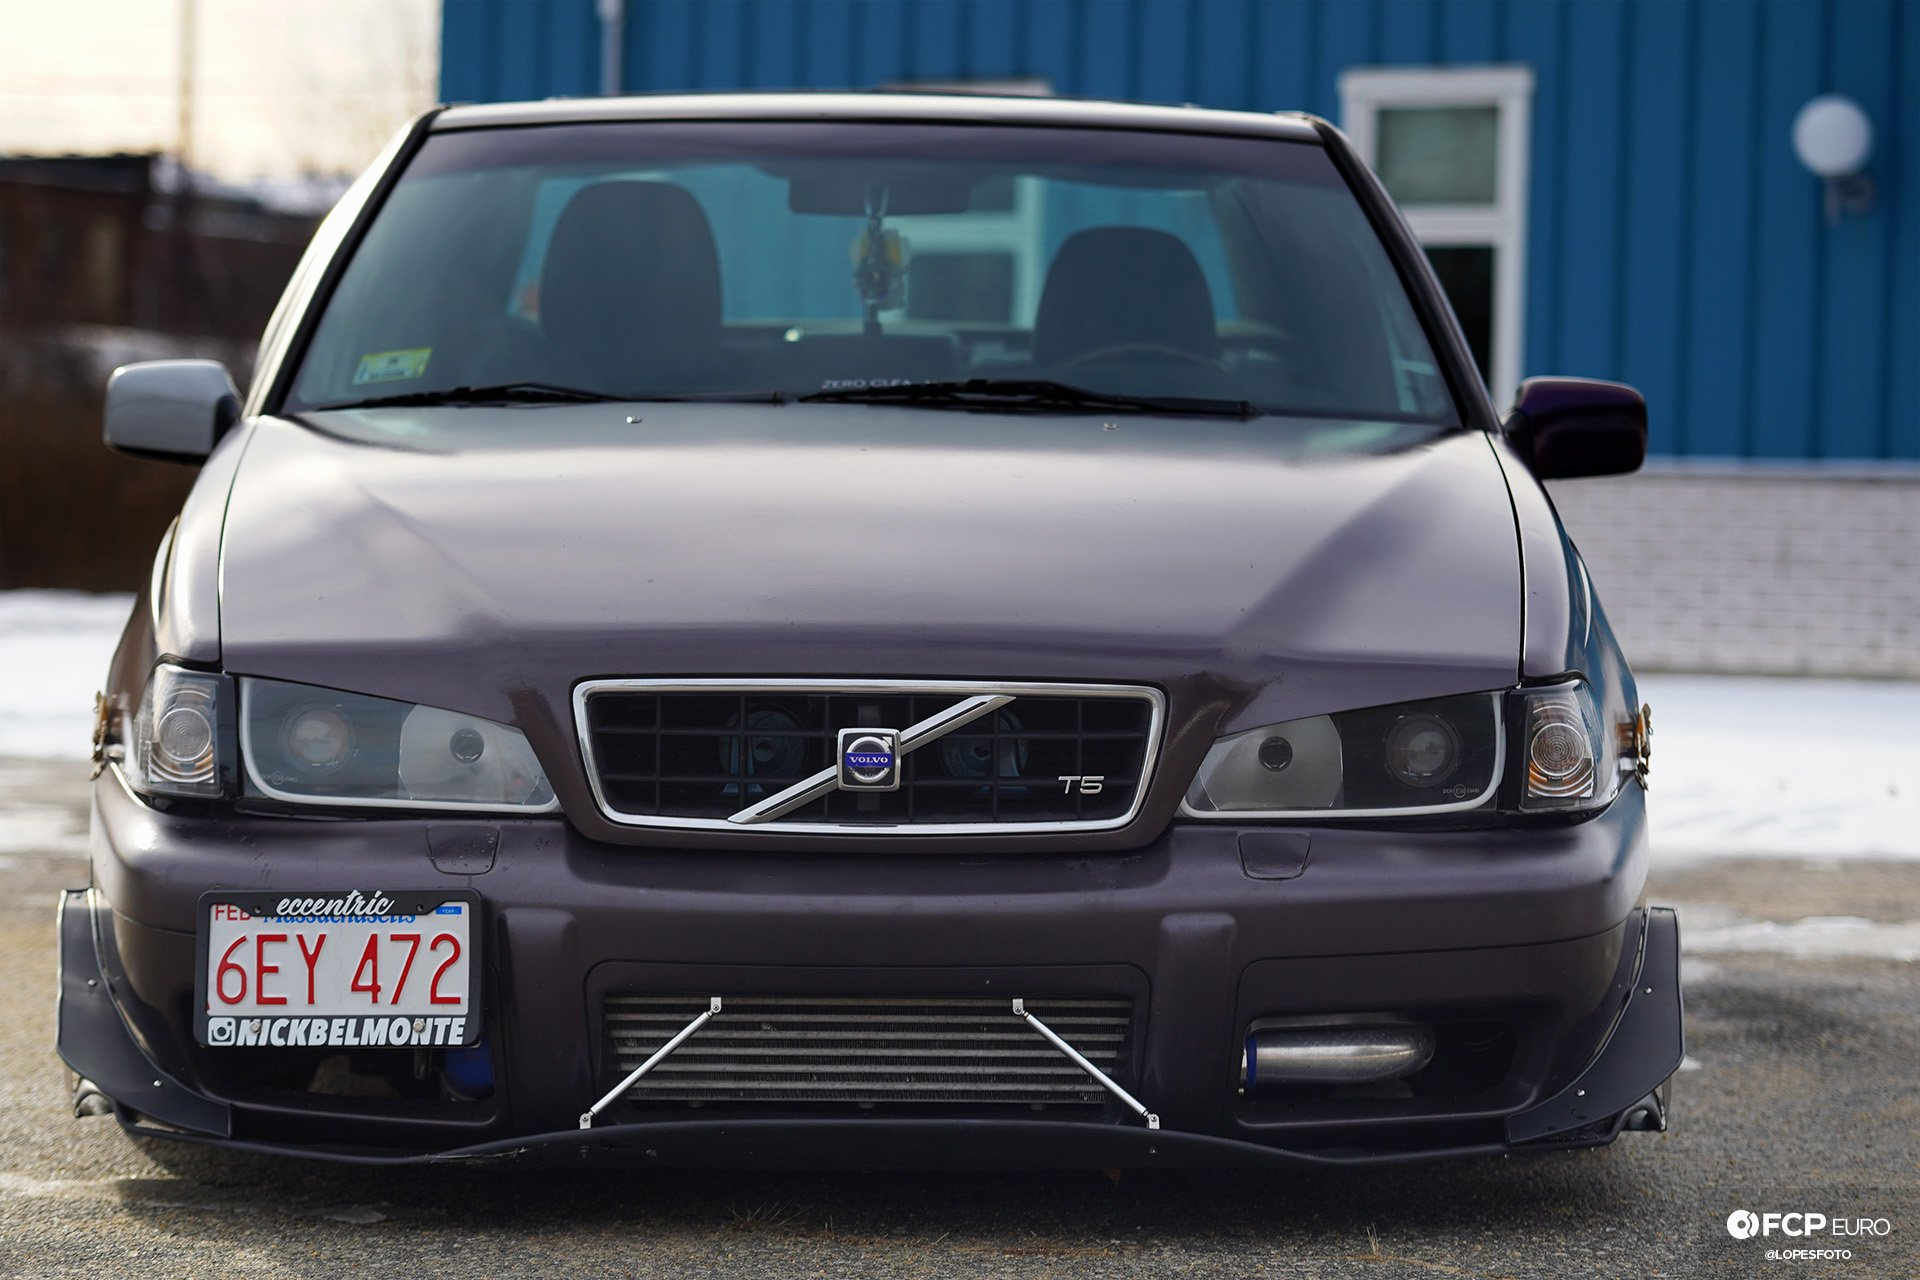 Volvo S70 T5M Turbo Front End